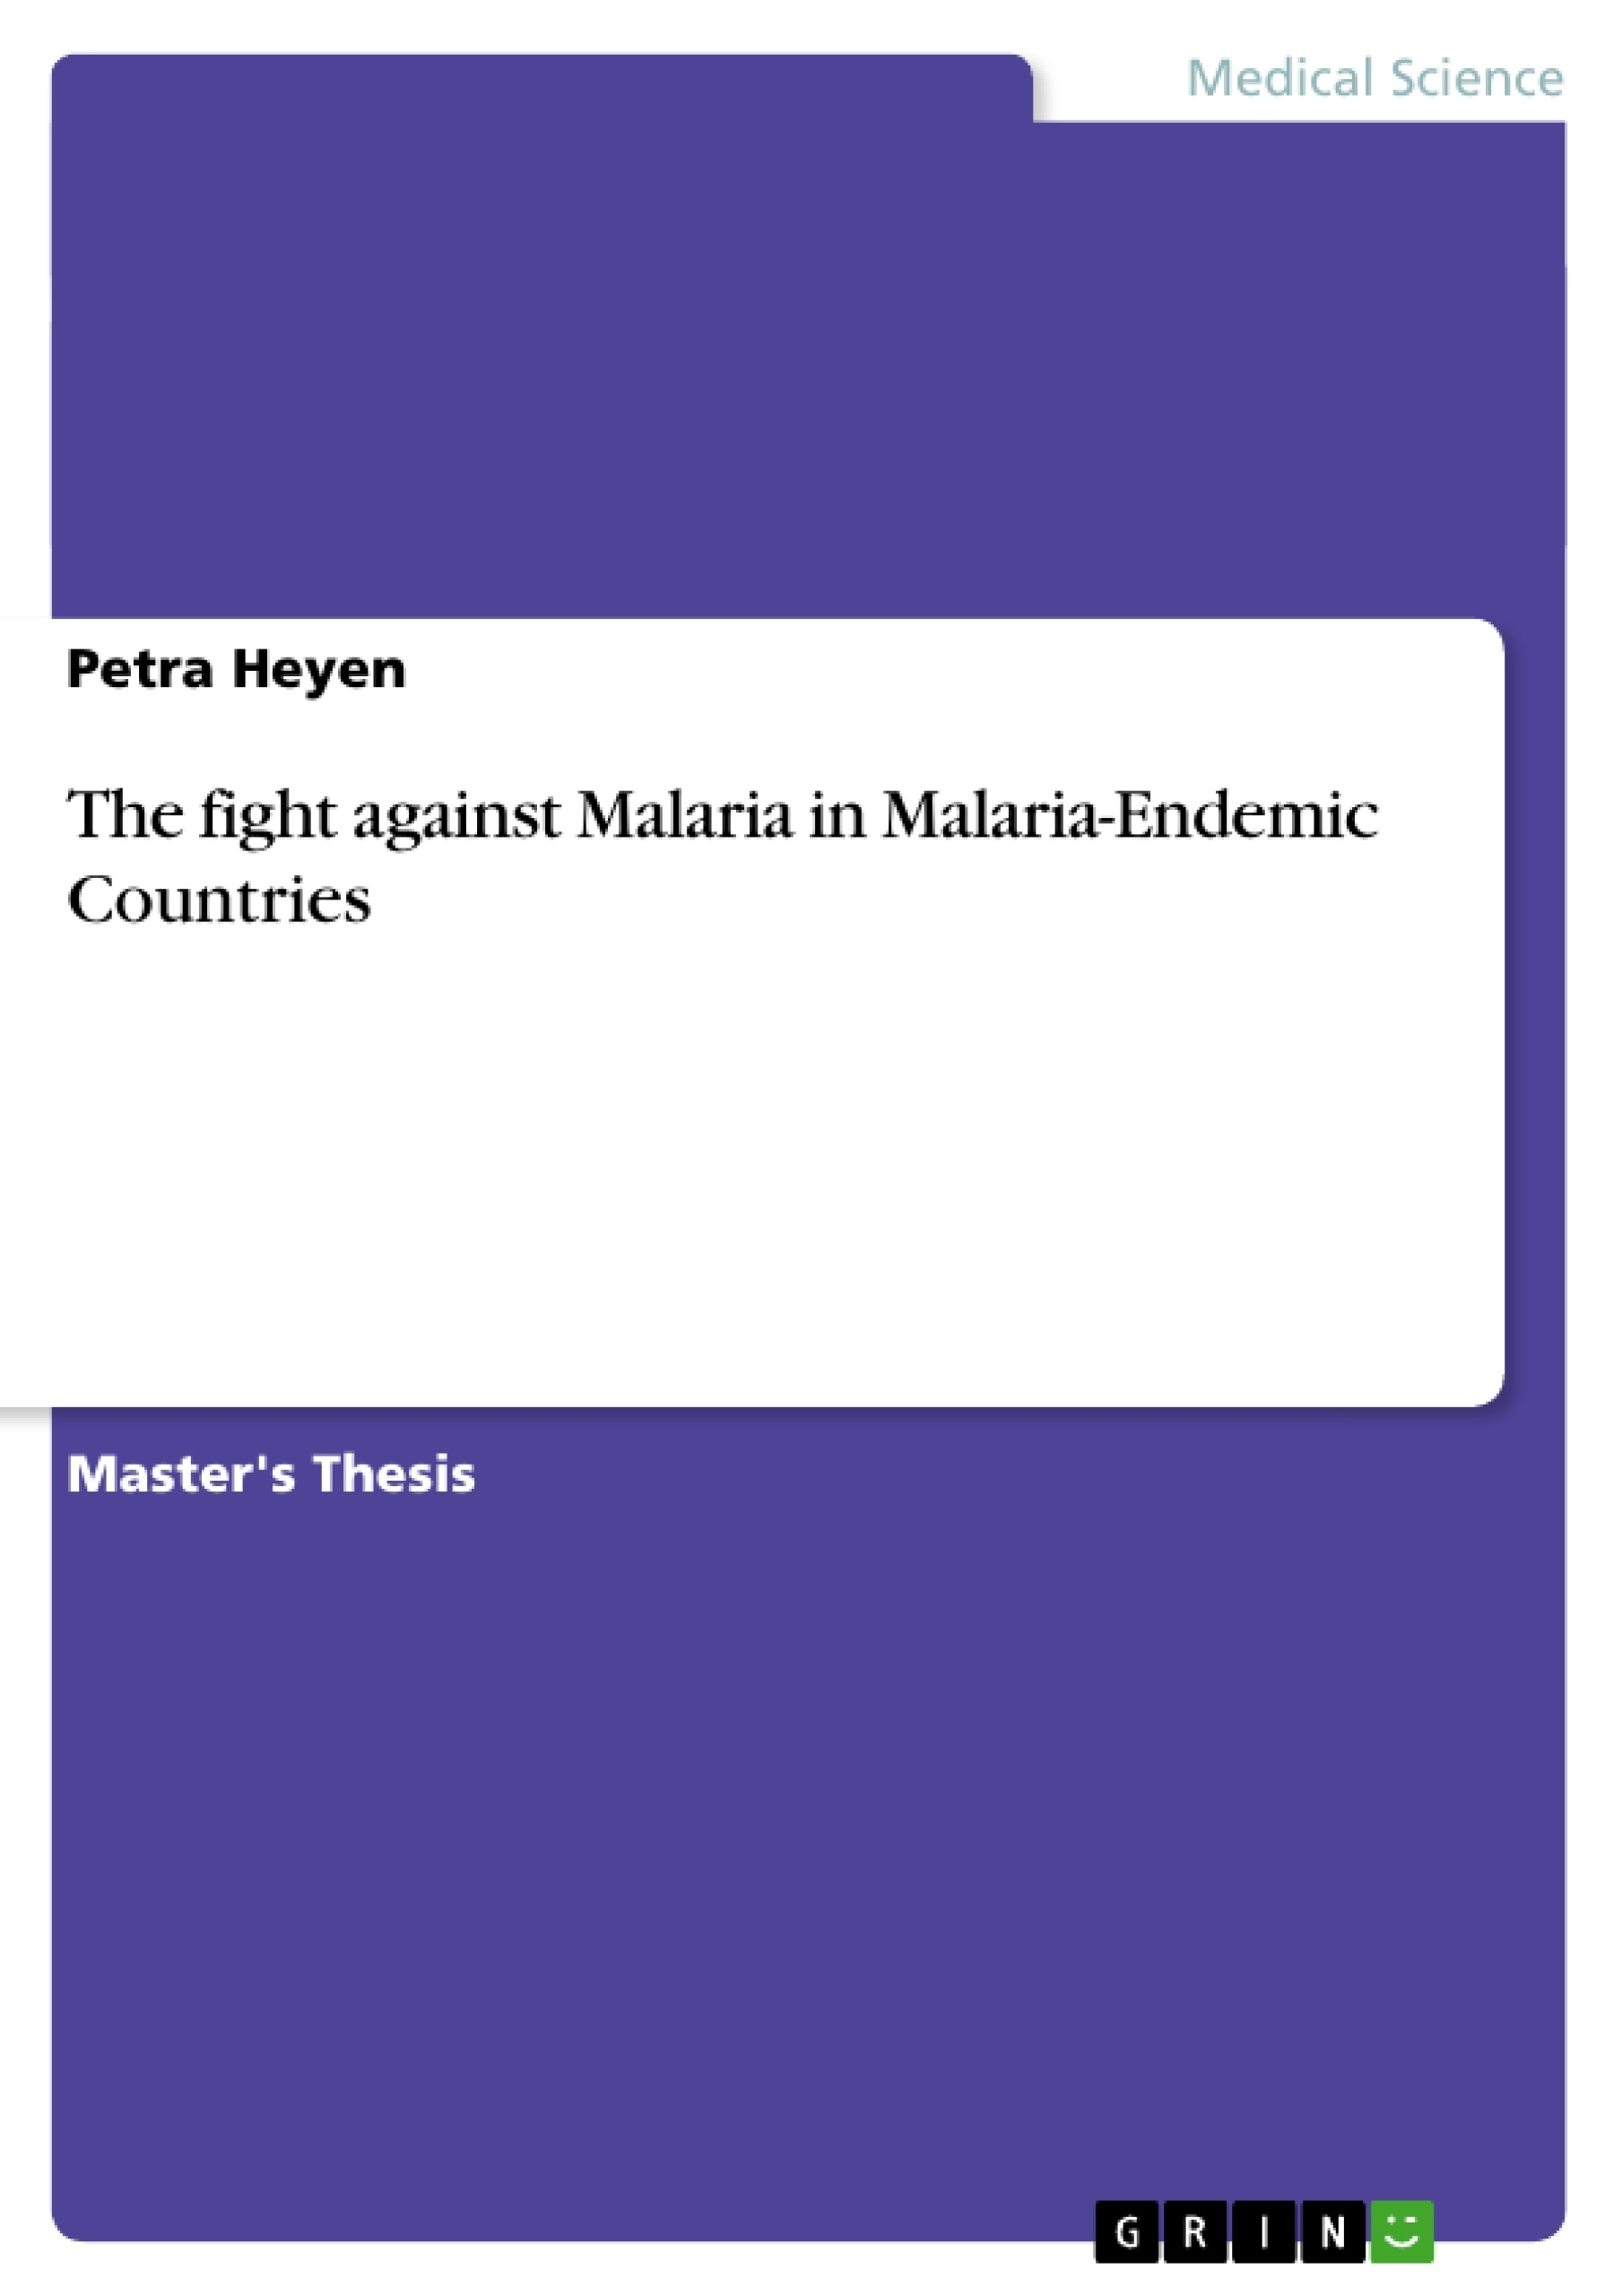 Phd thesis on malaria